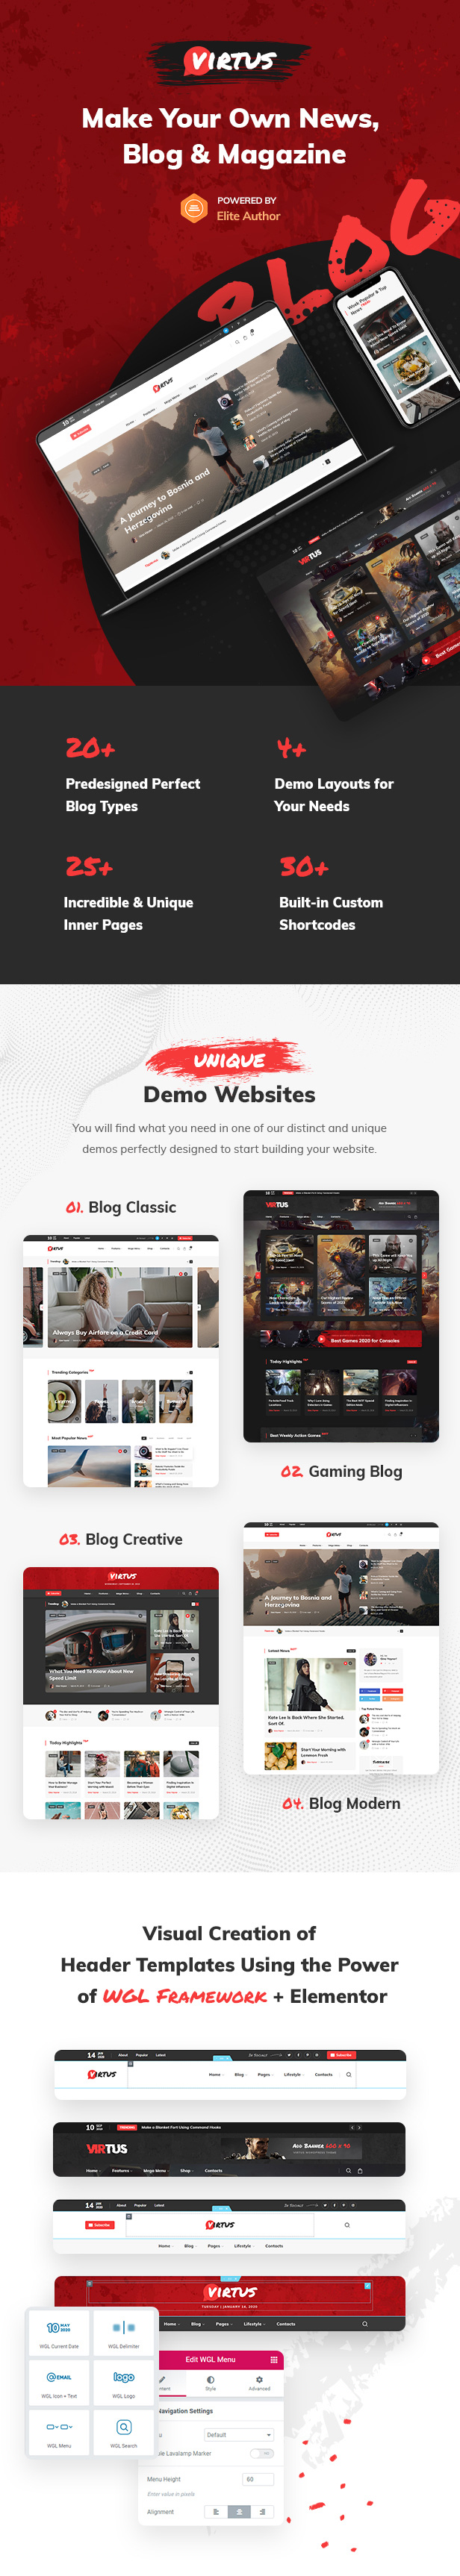 Virtus - Modern Blog & Magazine WordPress Theme - 1